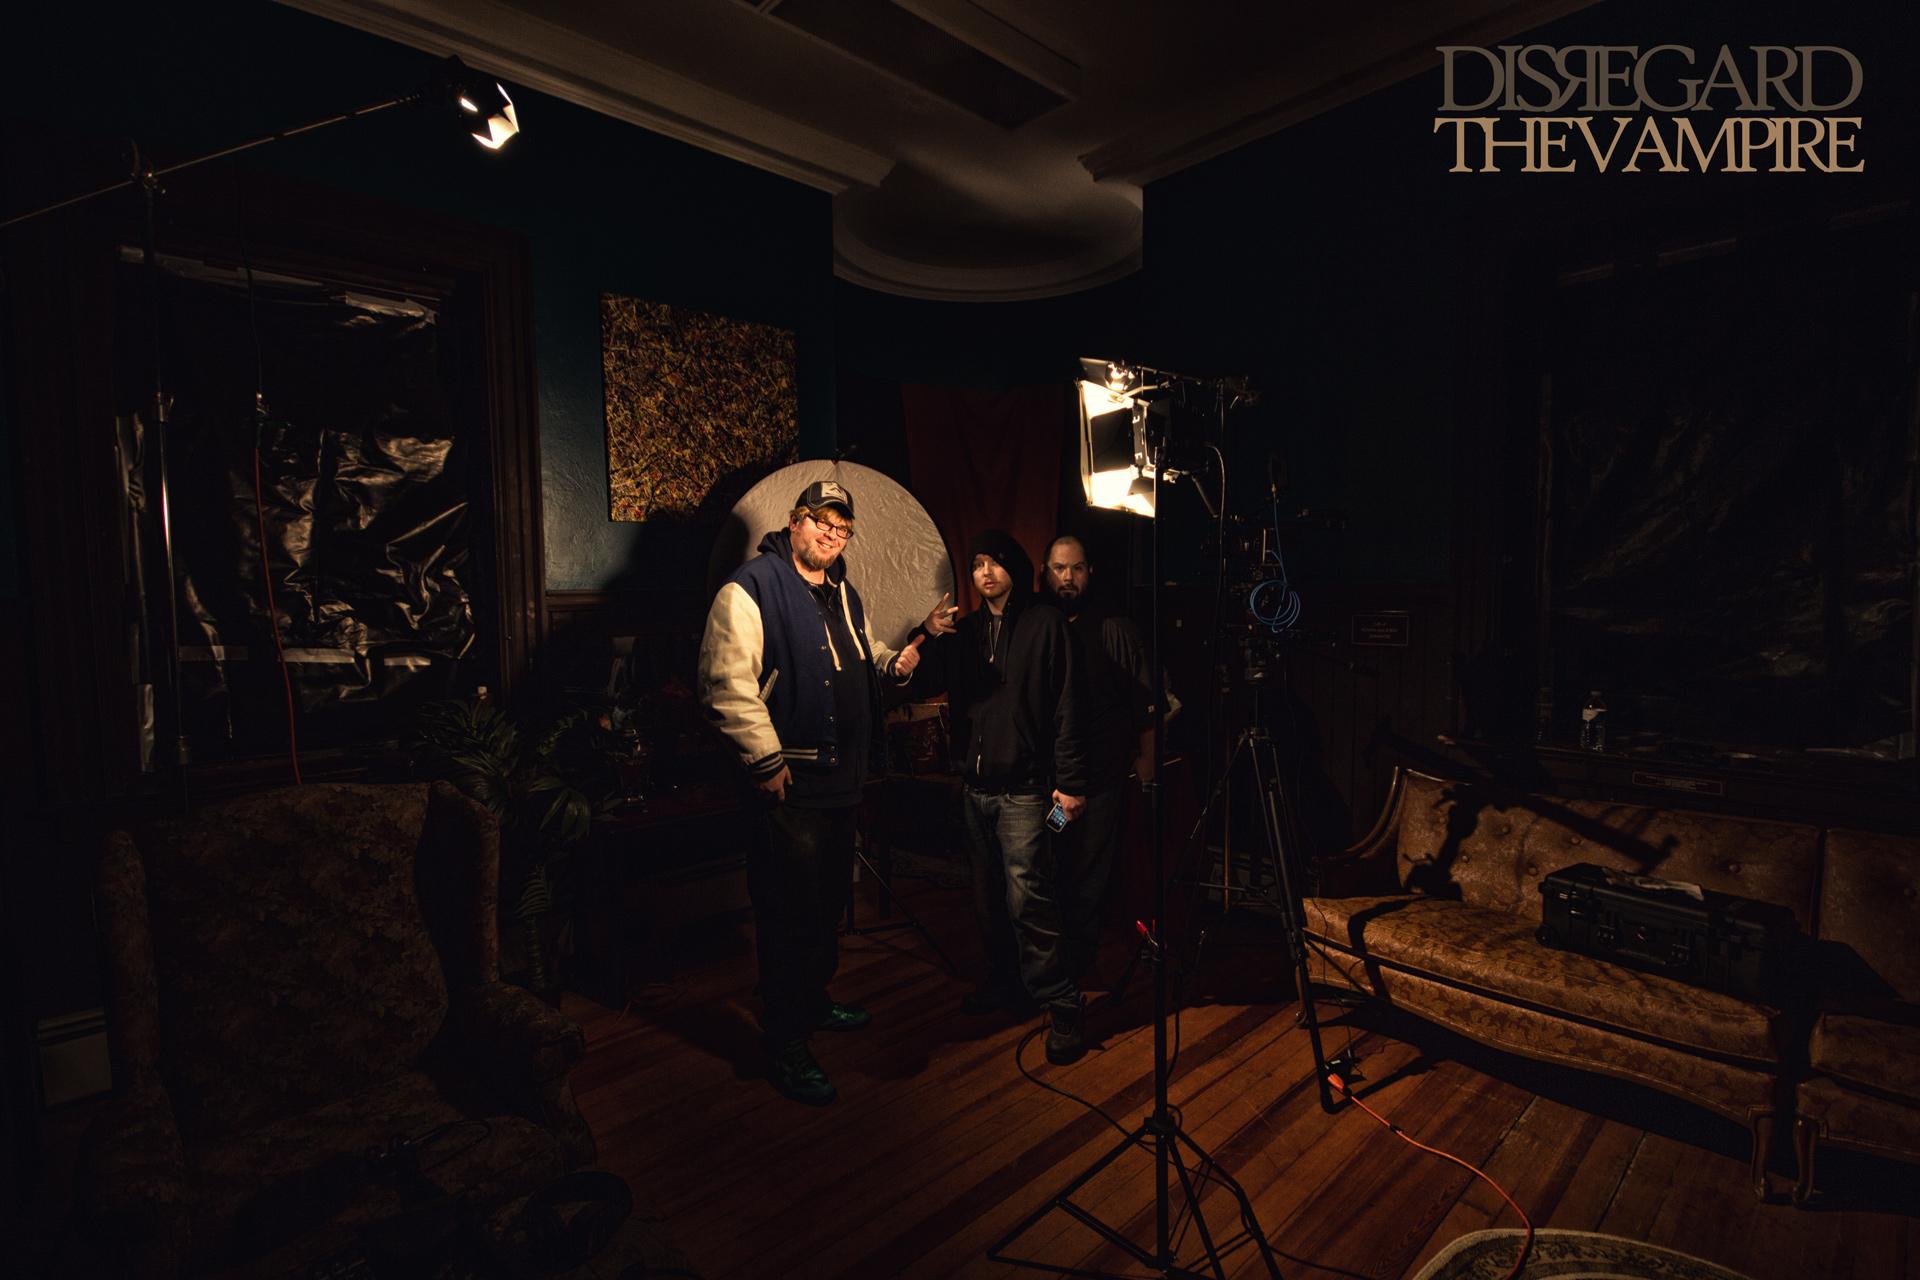 Creator Mike Messier with audio tech. CJ, and A.C. James DeMello on the set, 2014.